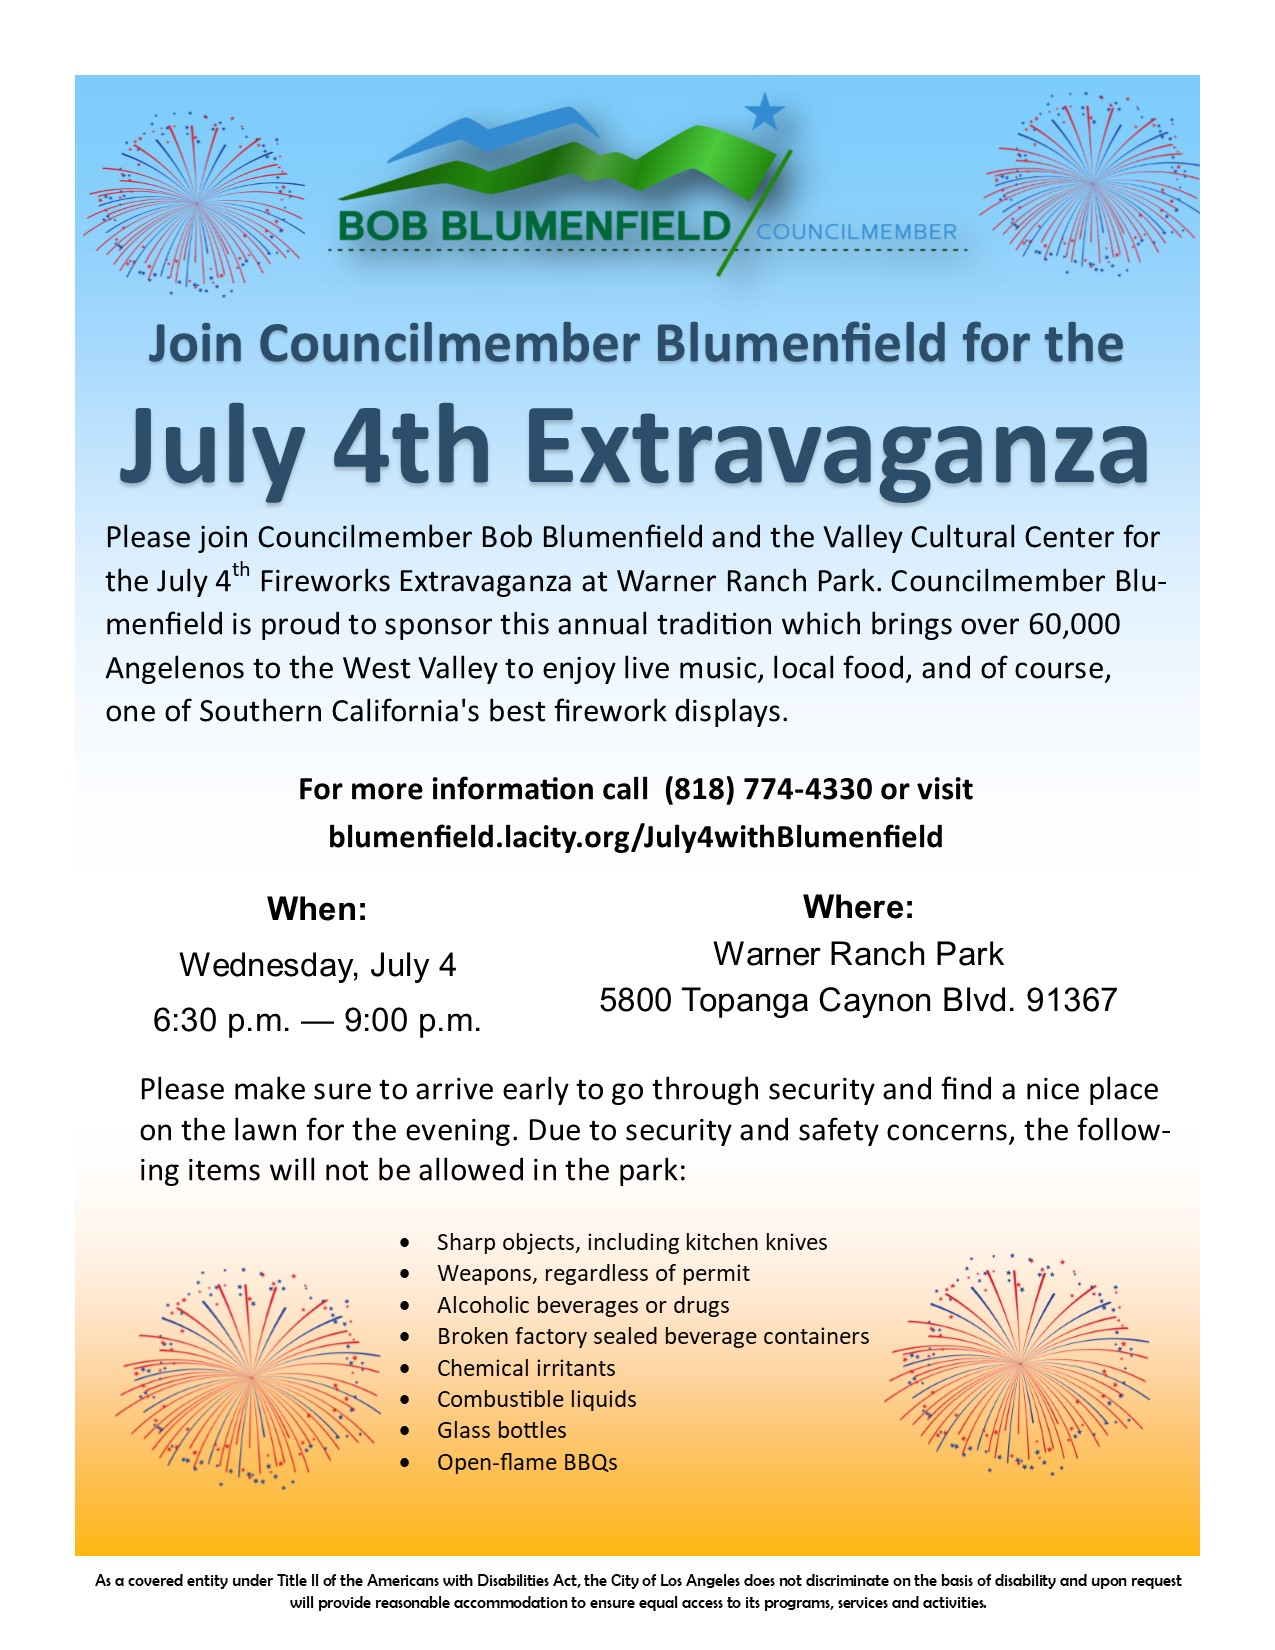 Join_Councilmember_Blumenfield_for_the__July_4th_Extravaganza.jpg